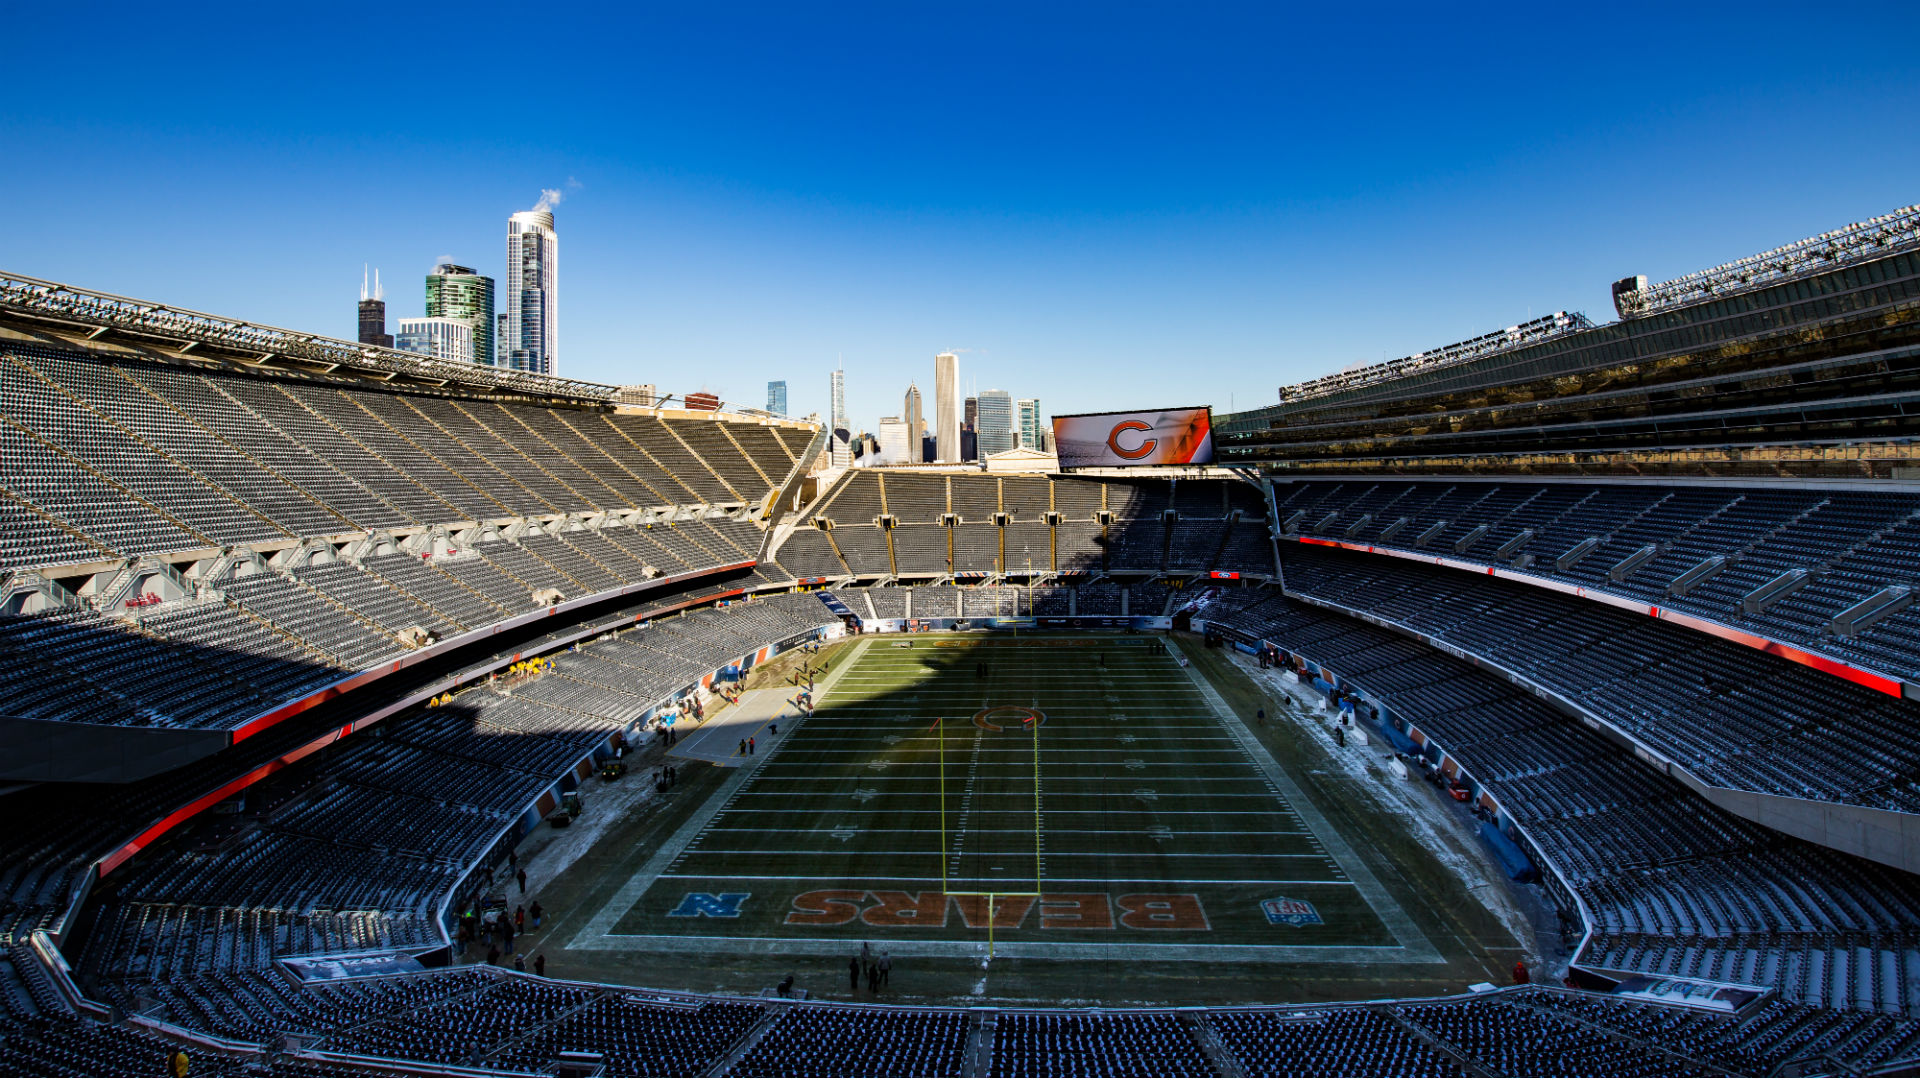 The Bears use Arlington's offer to squeeze Chicago into Soldier Field;  The mayor says they should focus on improving